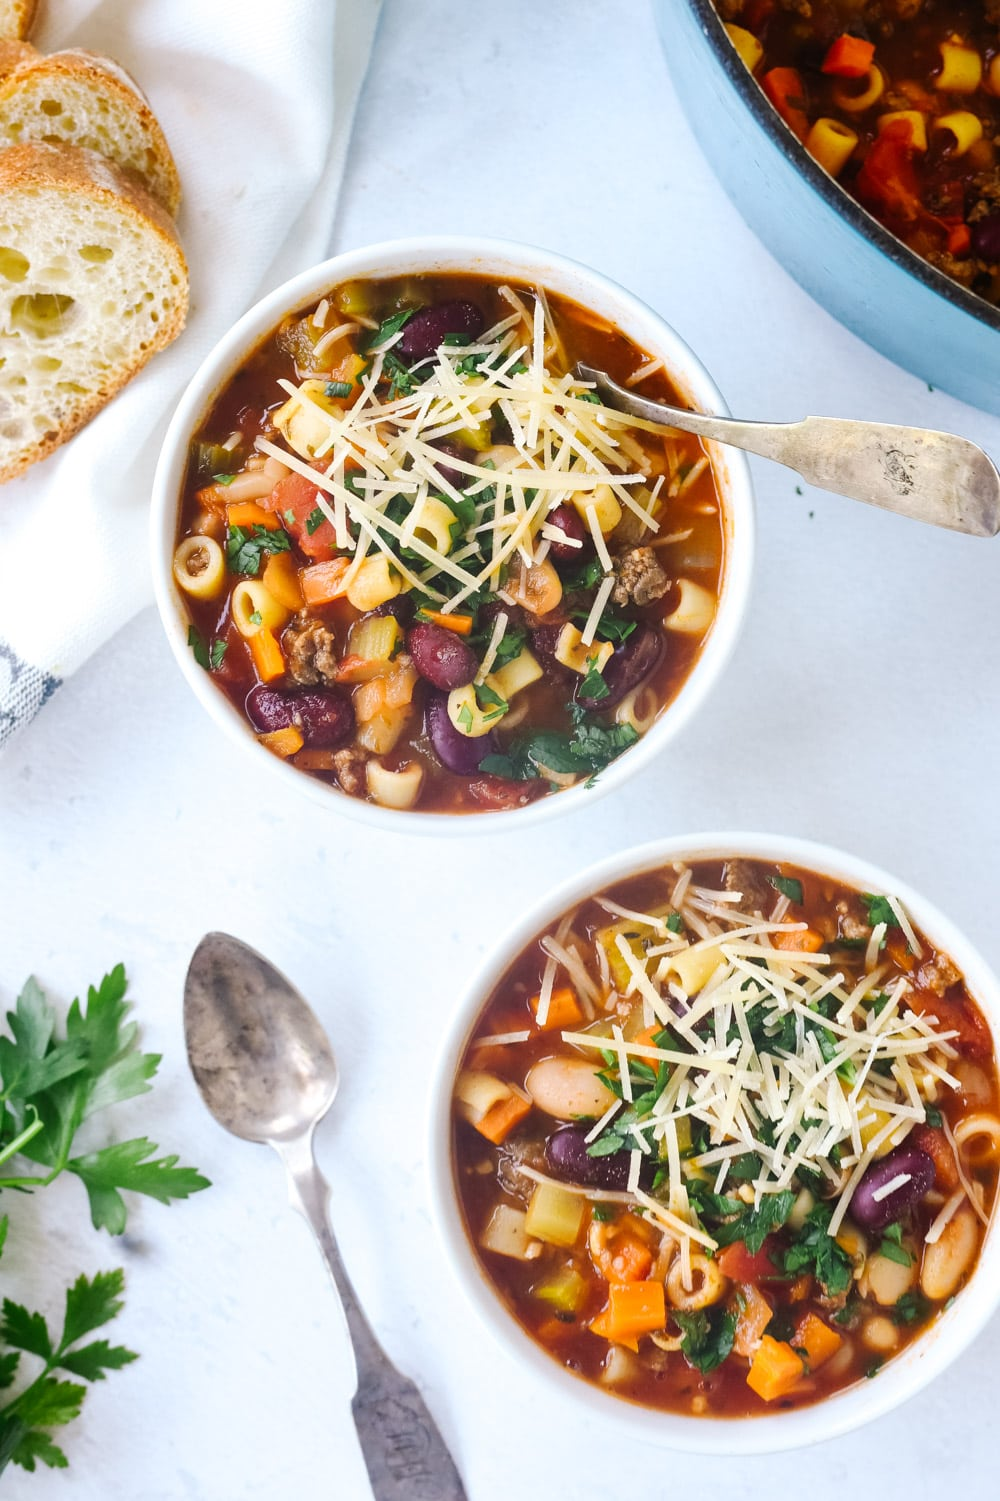 Two bowls of pasta fagioli soup